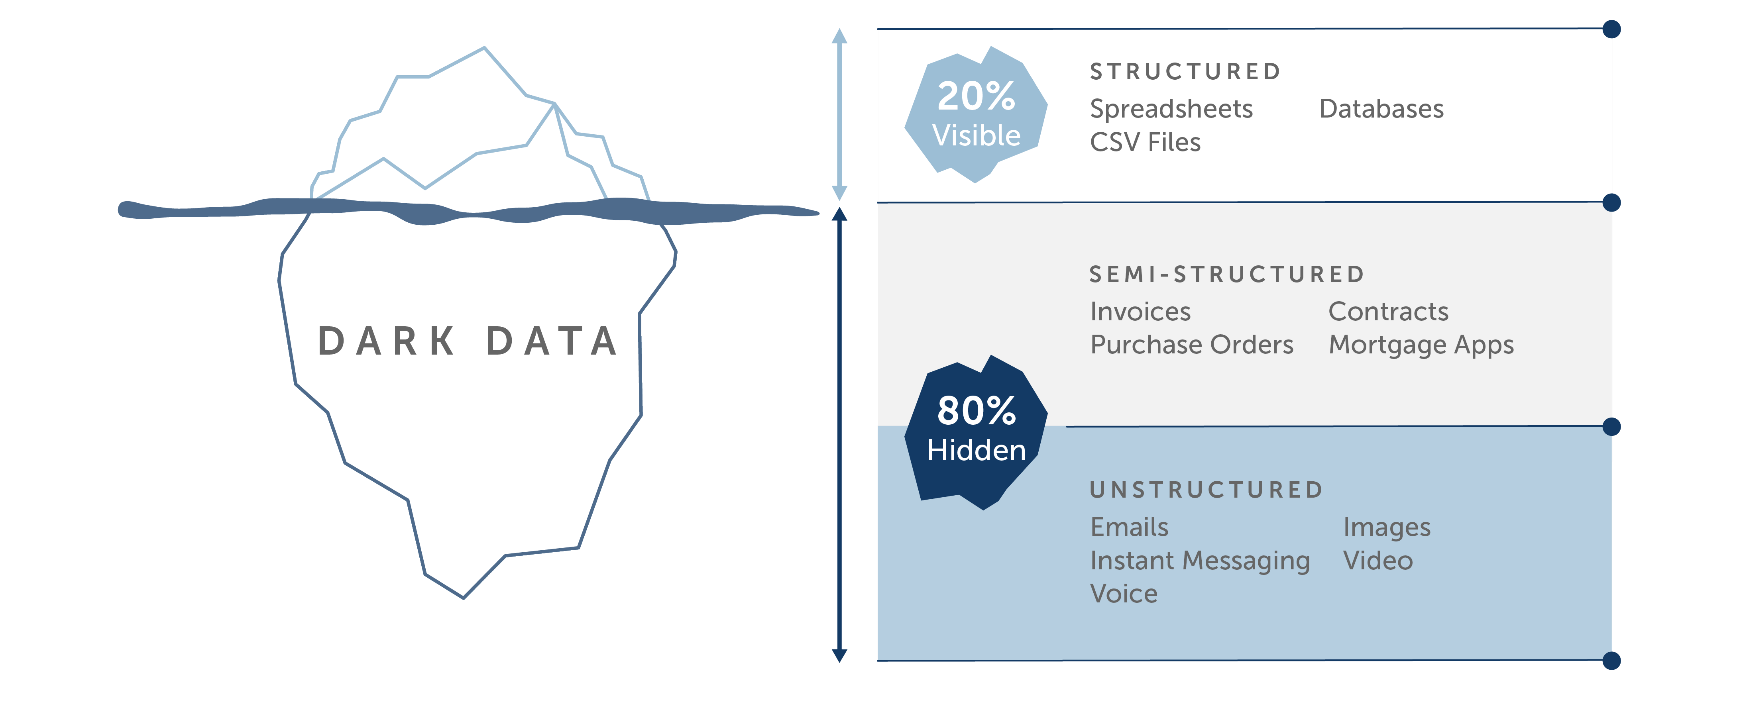 Dark Data in an organization is 80% hidden and consists of semi-structured data, for example, invoices, contracts, and purchase orders and unstructured data, for example, emails, images, and voice.